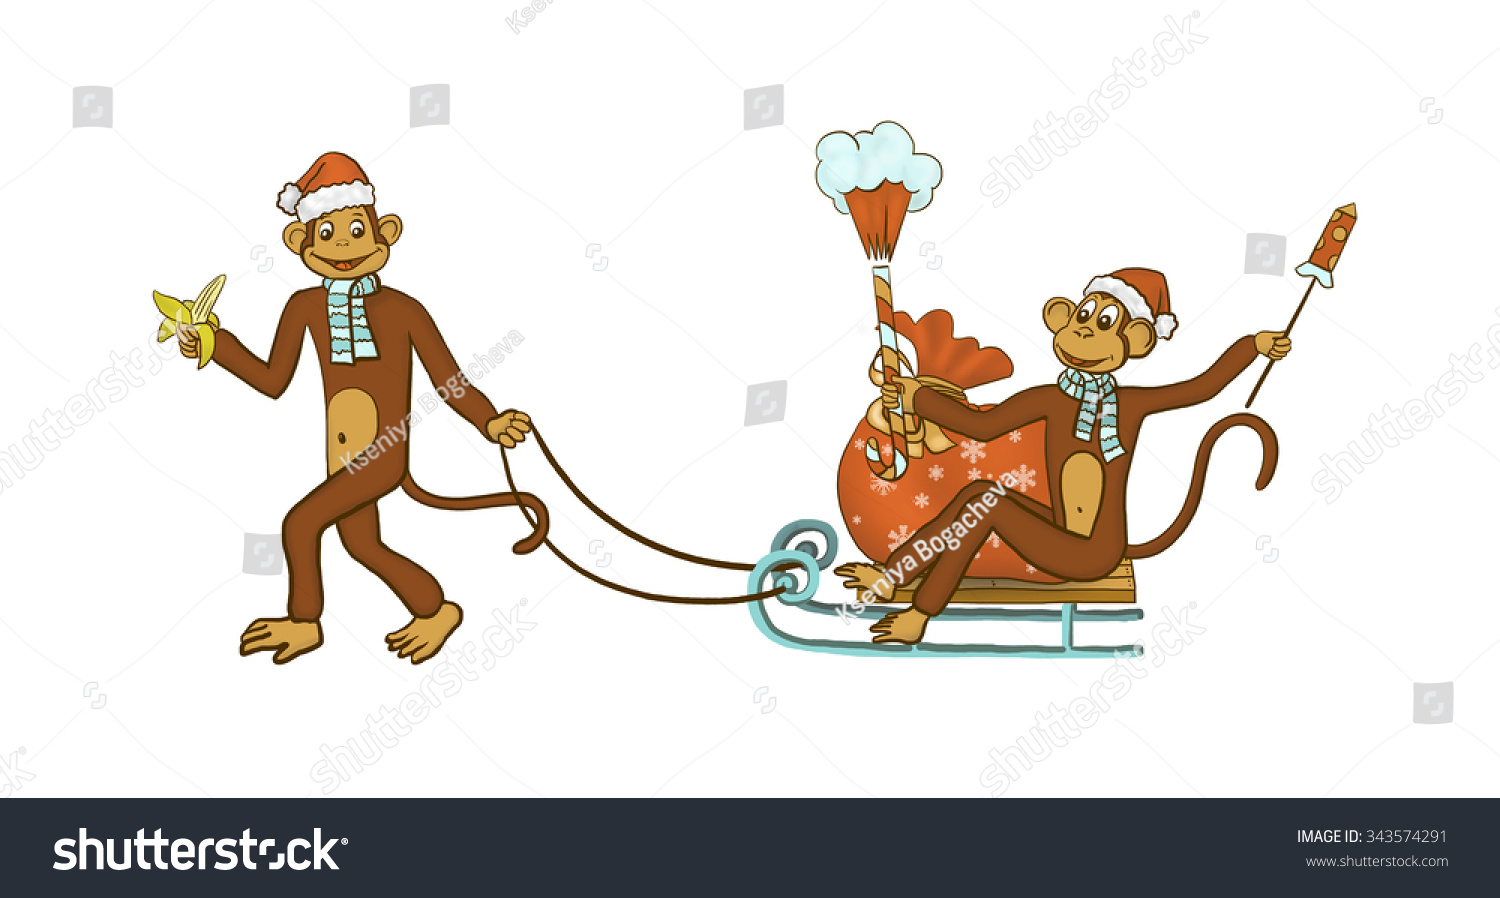 new year christmas monkey and a banana with a sack sleigh